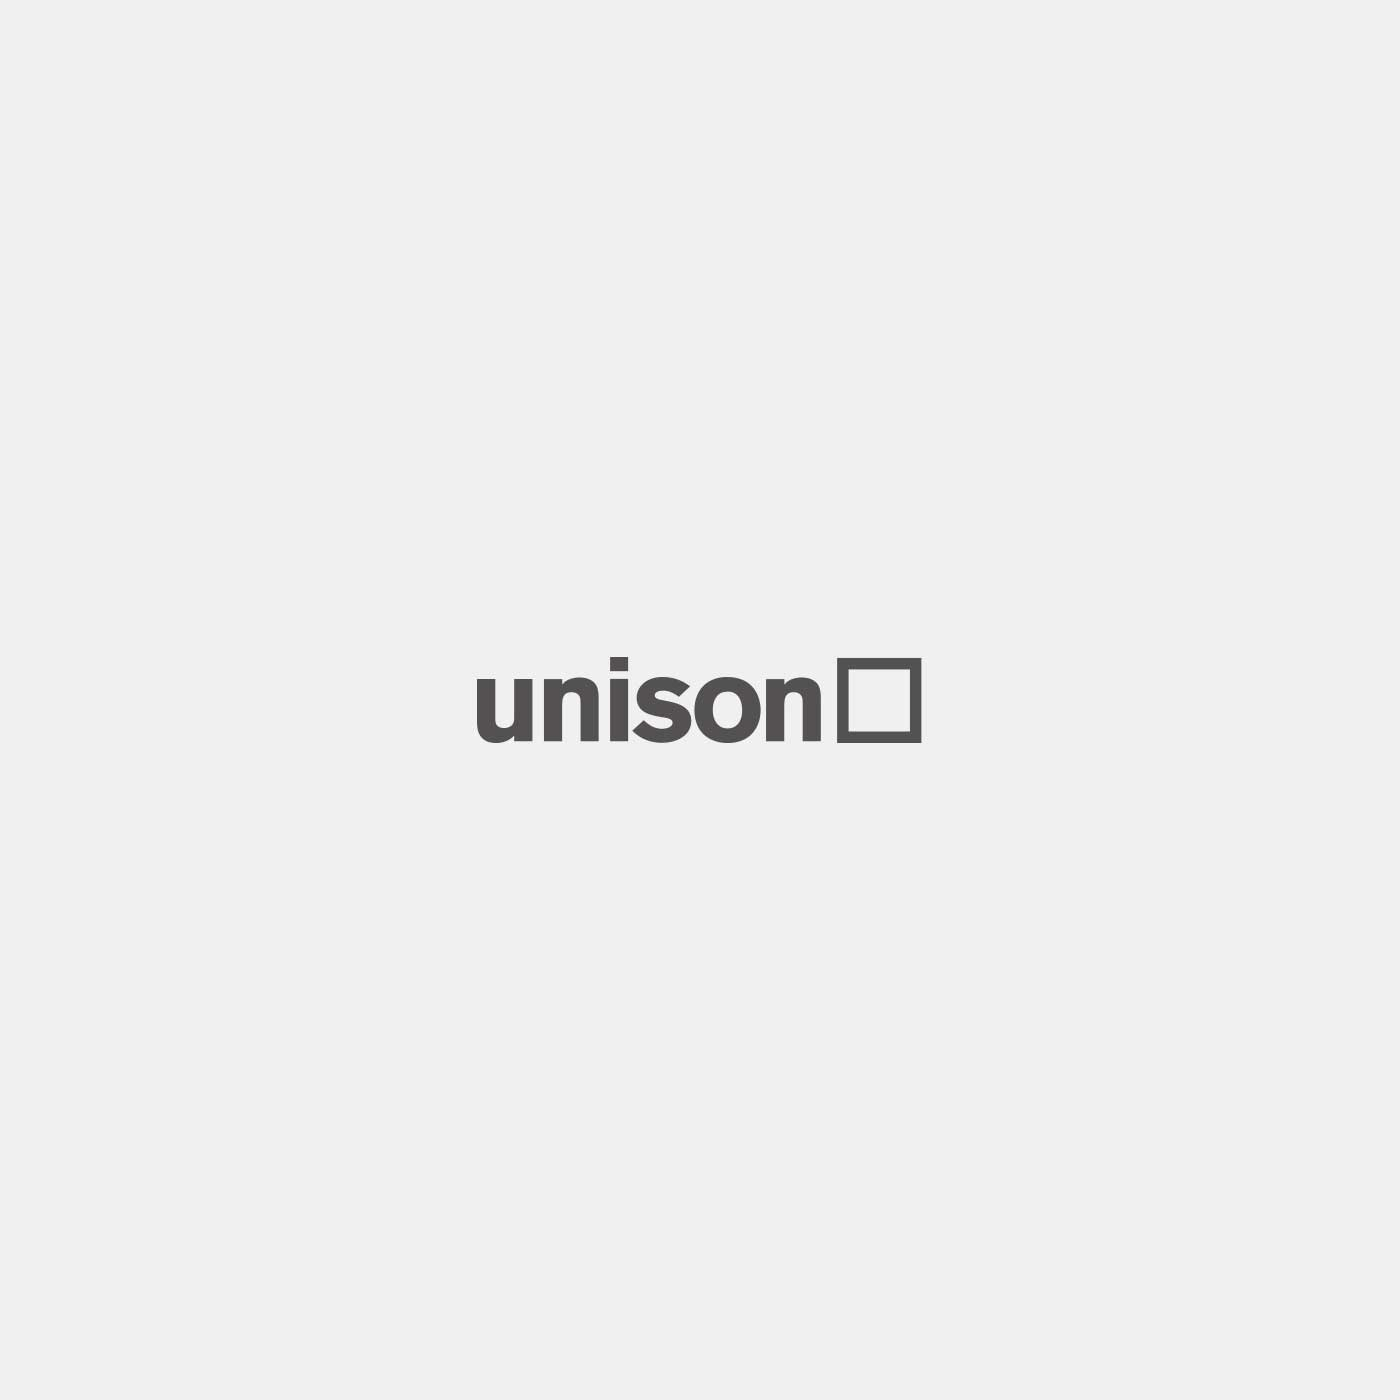 Ribbed + Oblique Planters